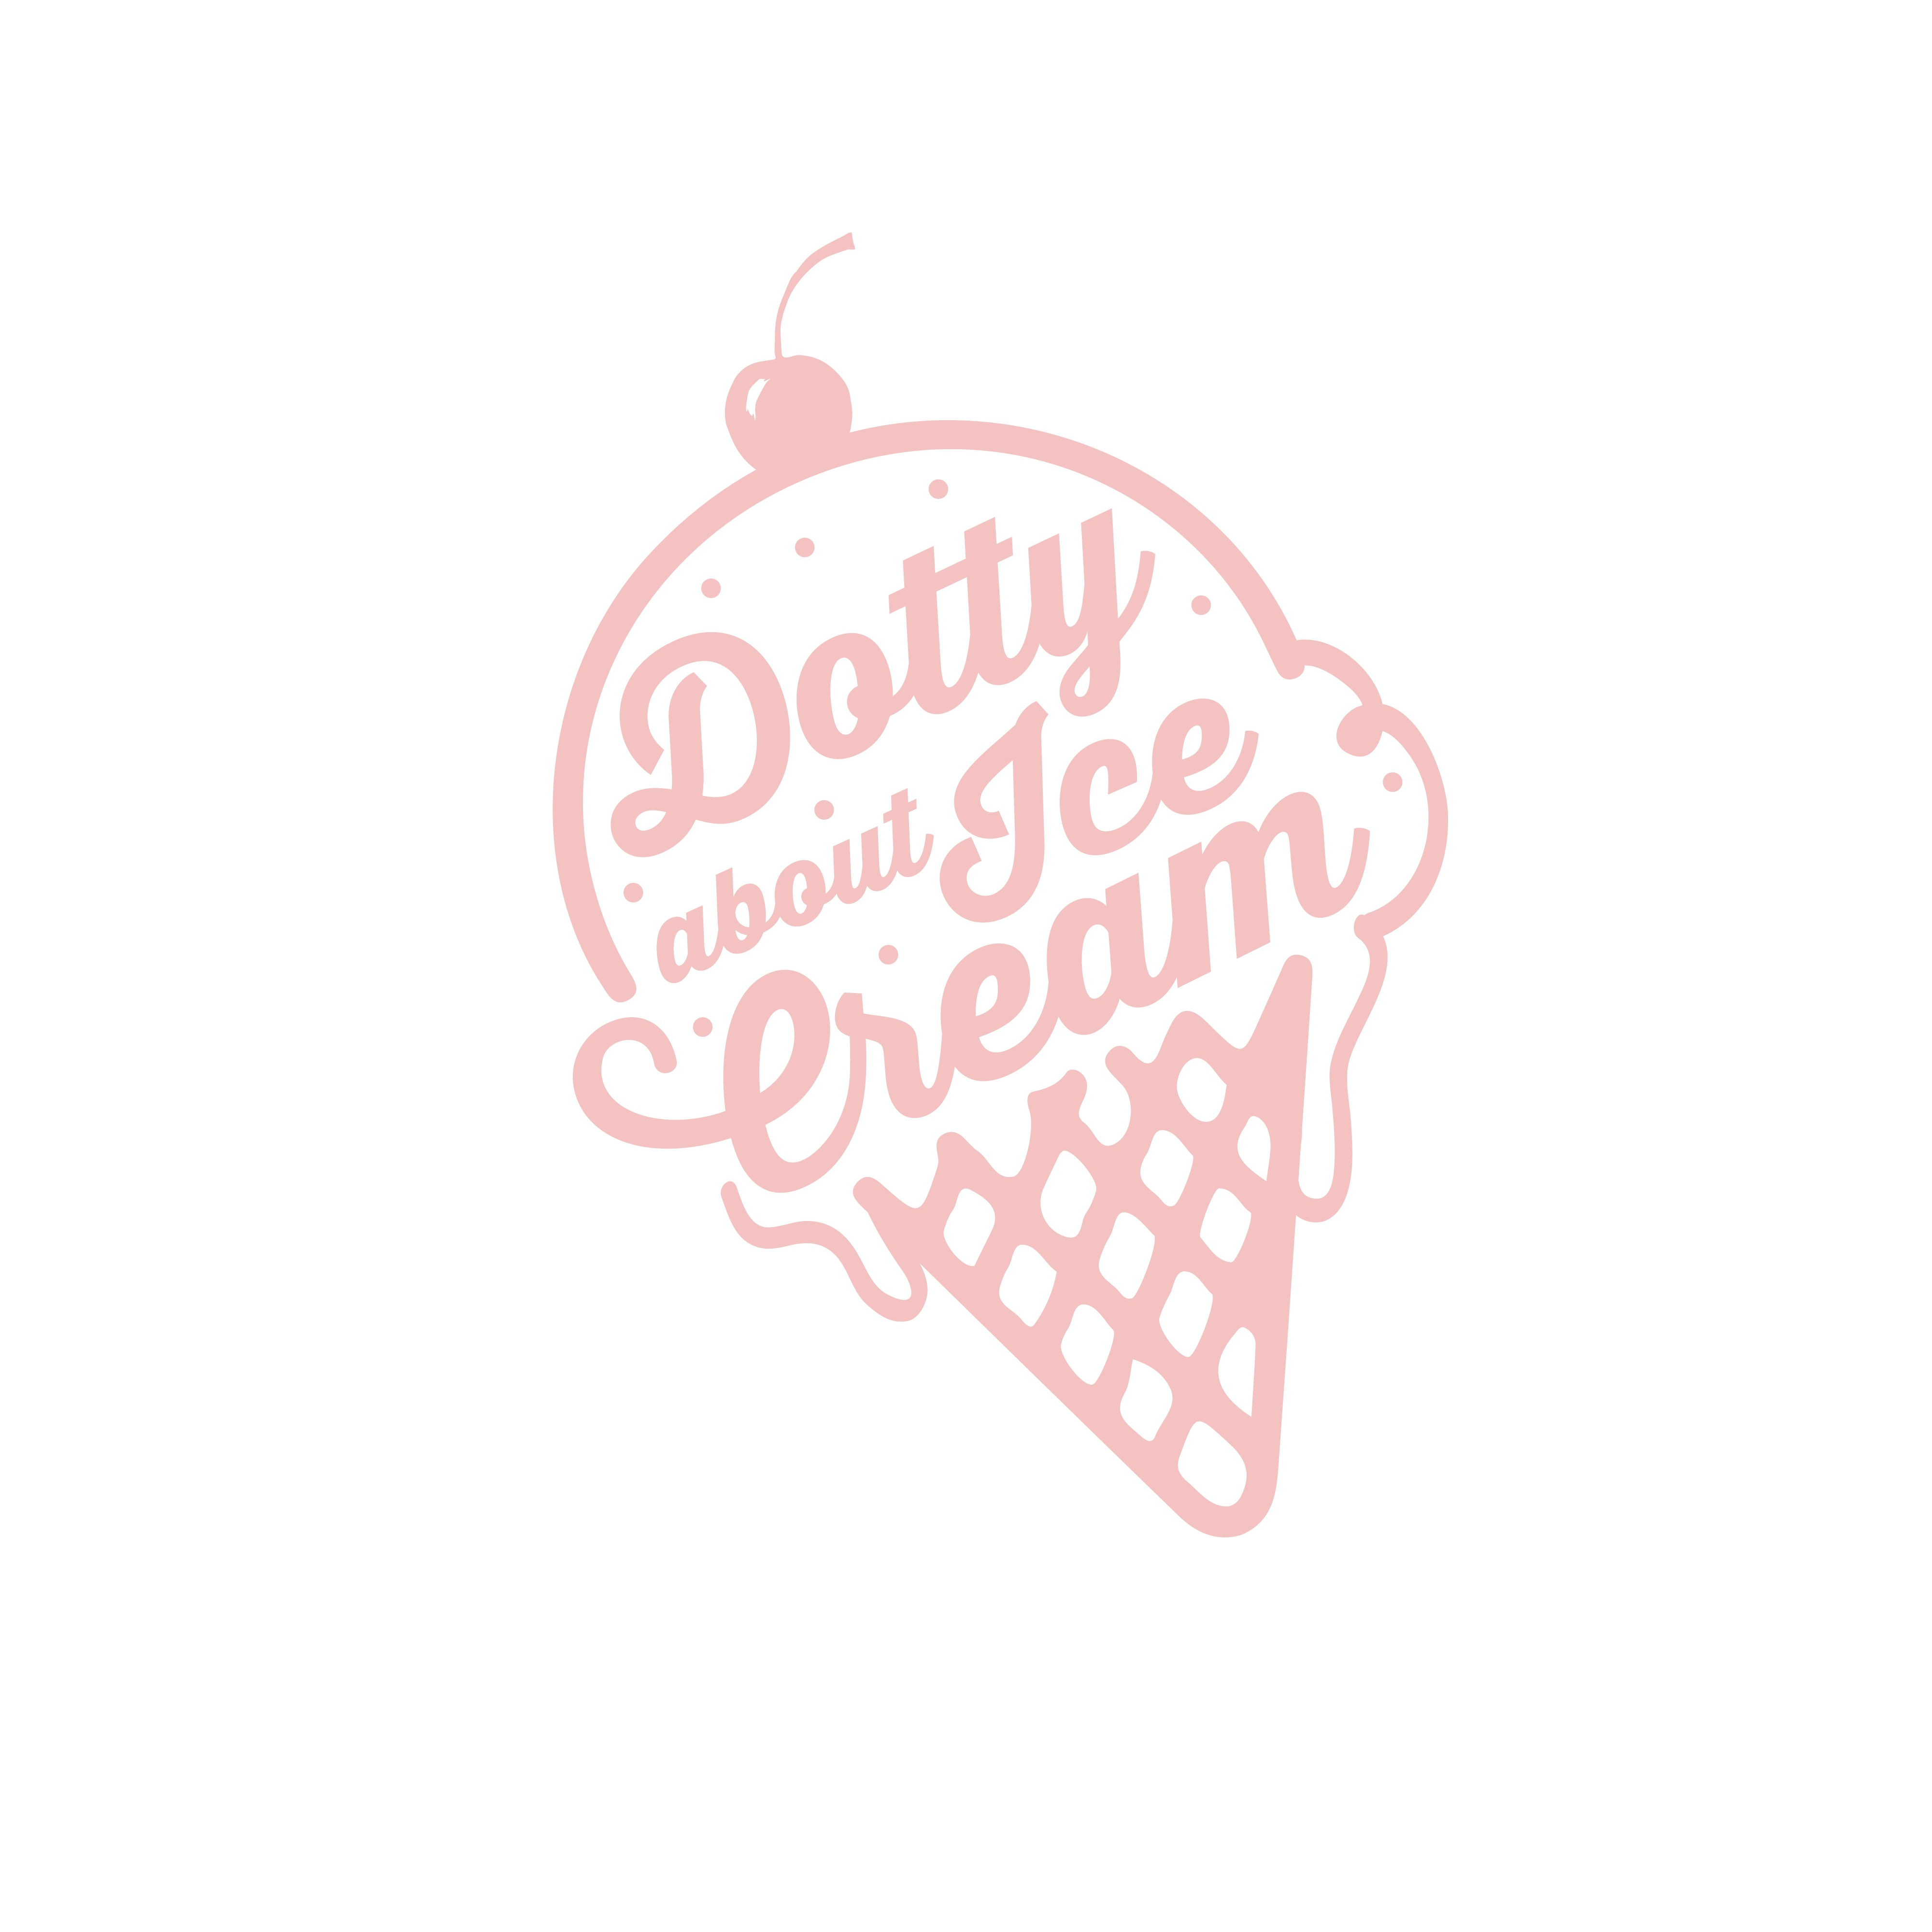 Creating a unique vintage website and logo for a beautiful vintage ice cream van